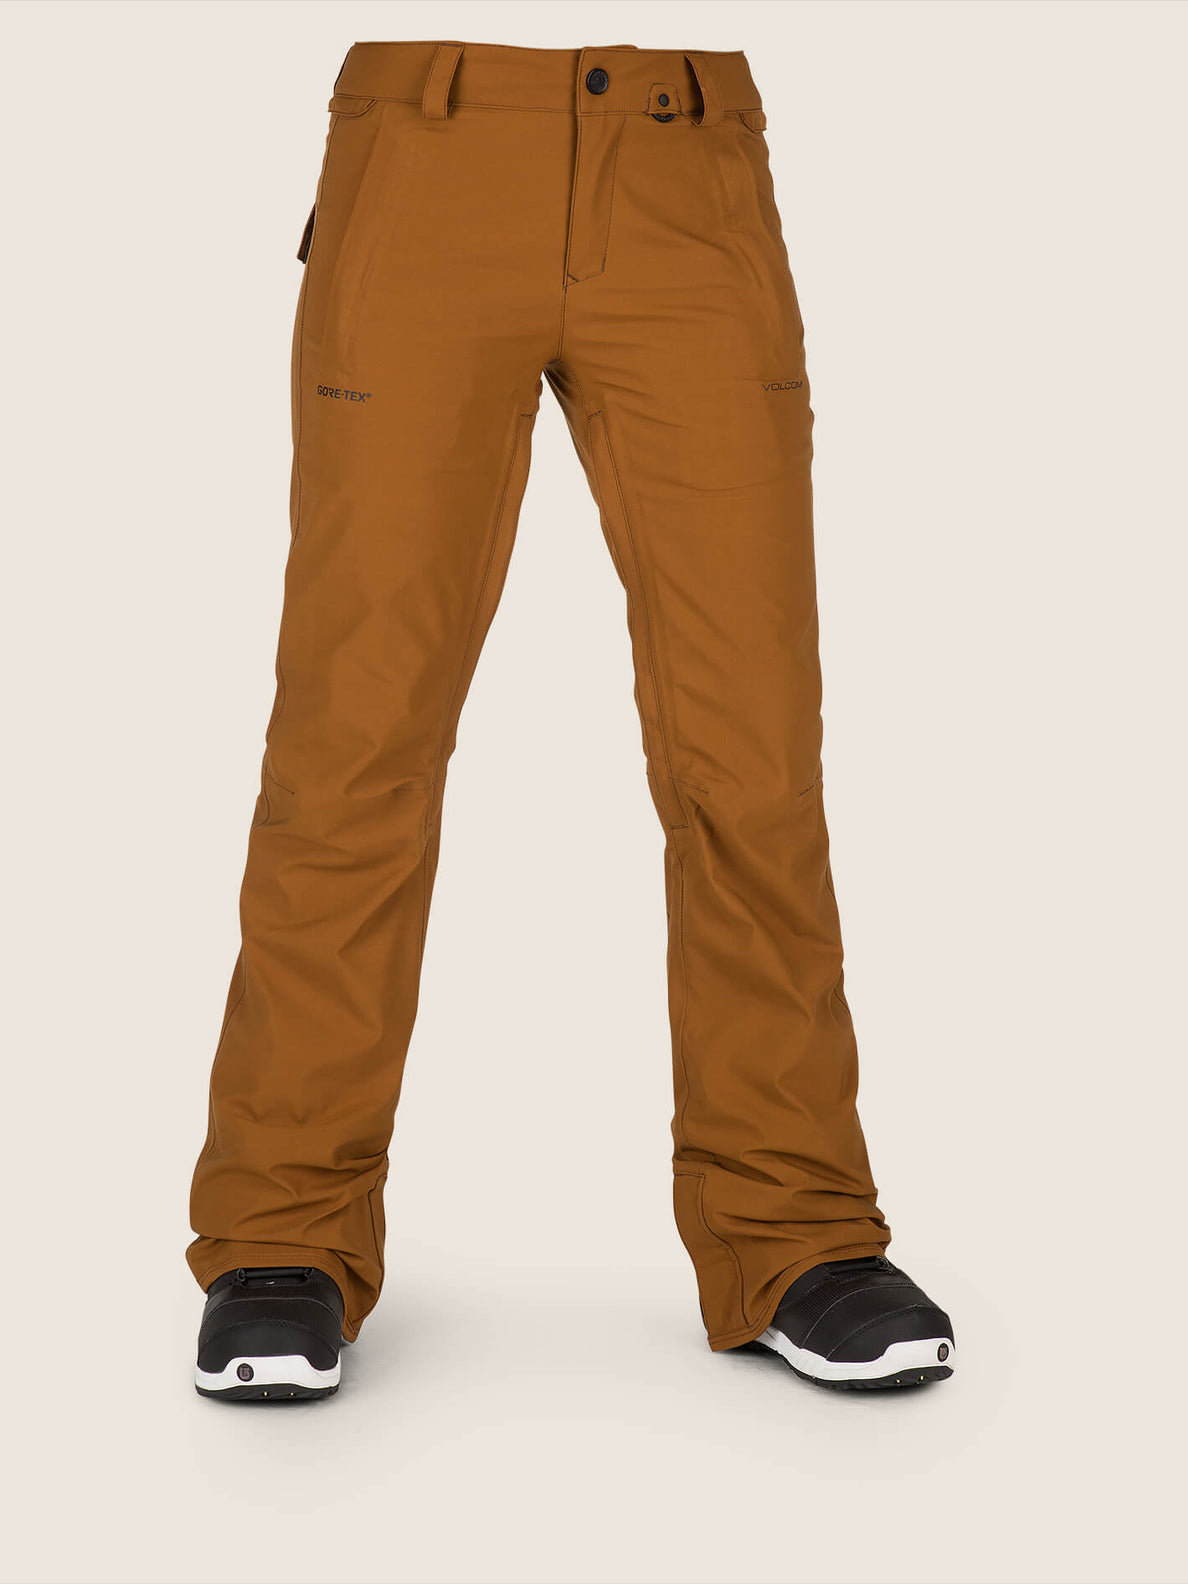 Flor Stretch Gore-tex Pant In Copper, Front View